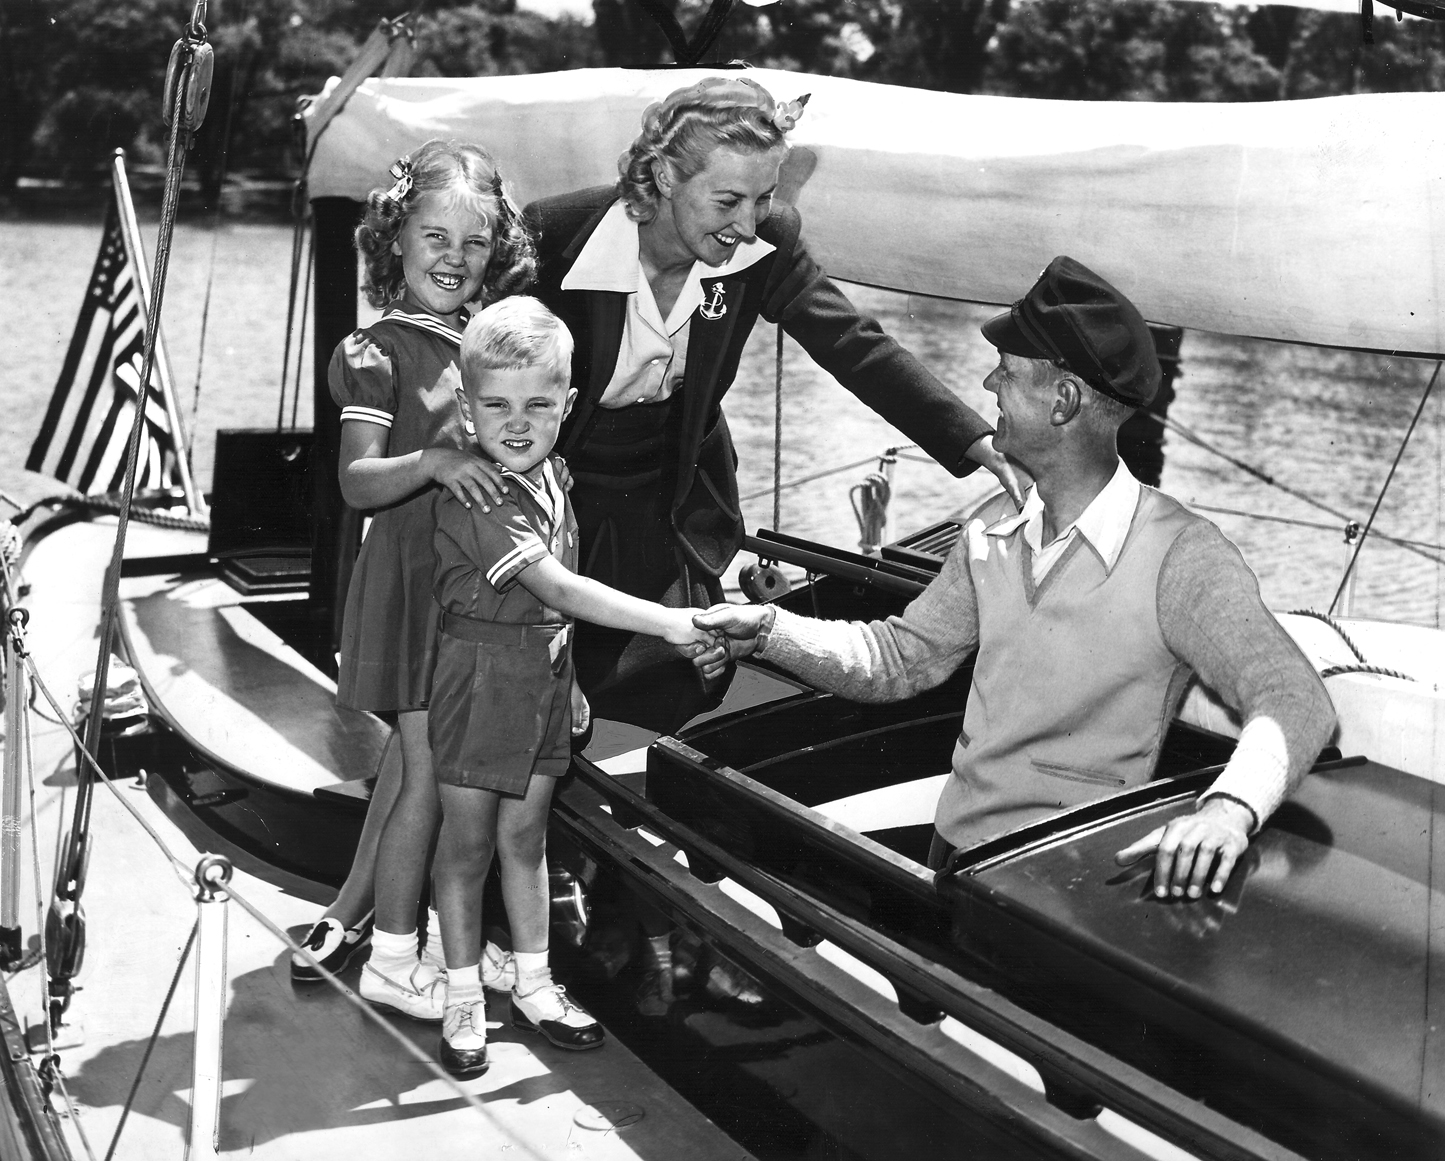 toot ruth nancy skip apache hatch.jpg - Toot Gmeiner w/ Ruth, Nancy, Skip aboard Apache July 9th, 1942